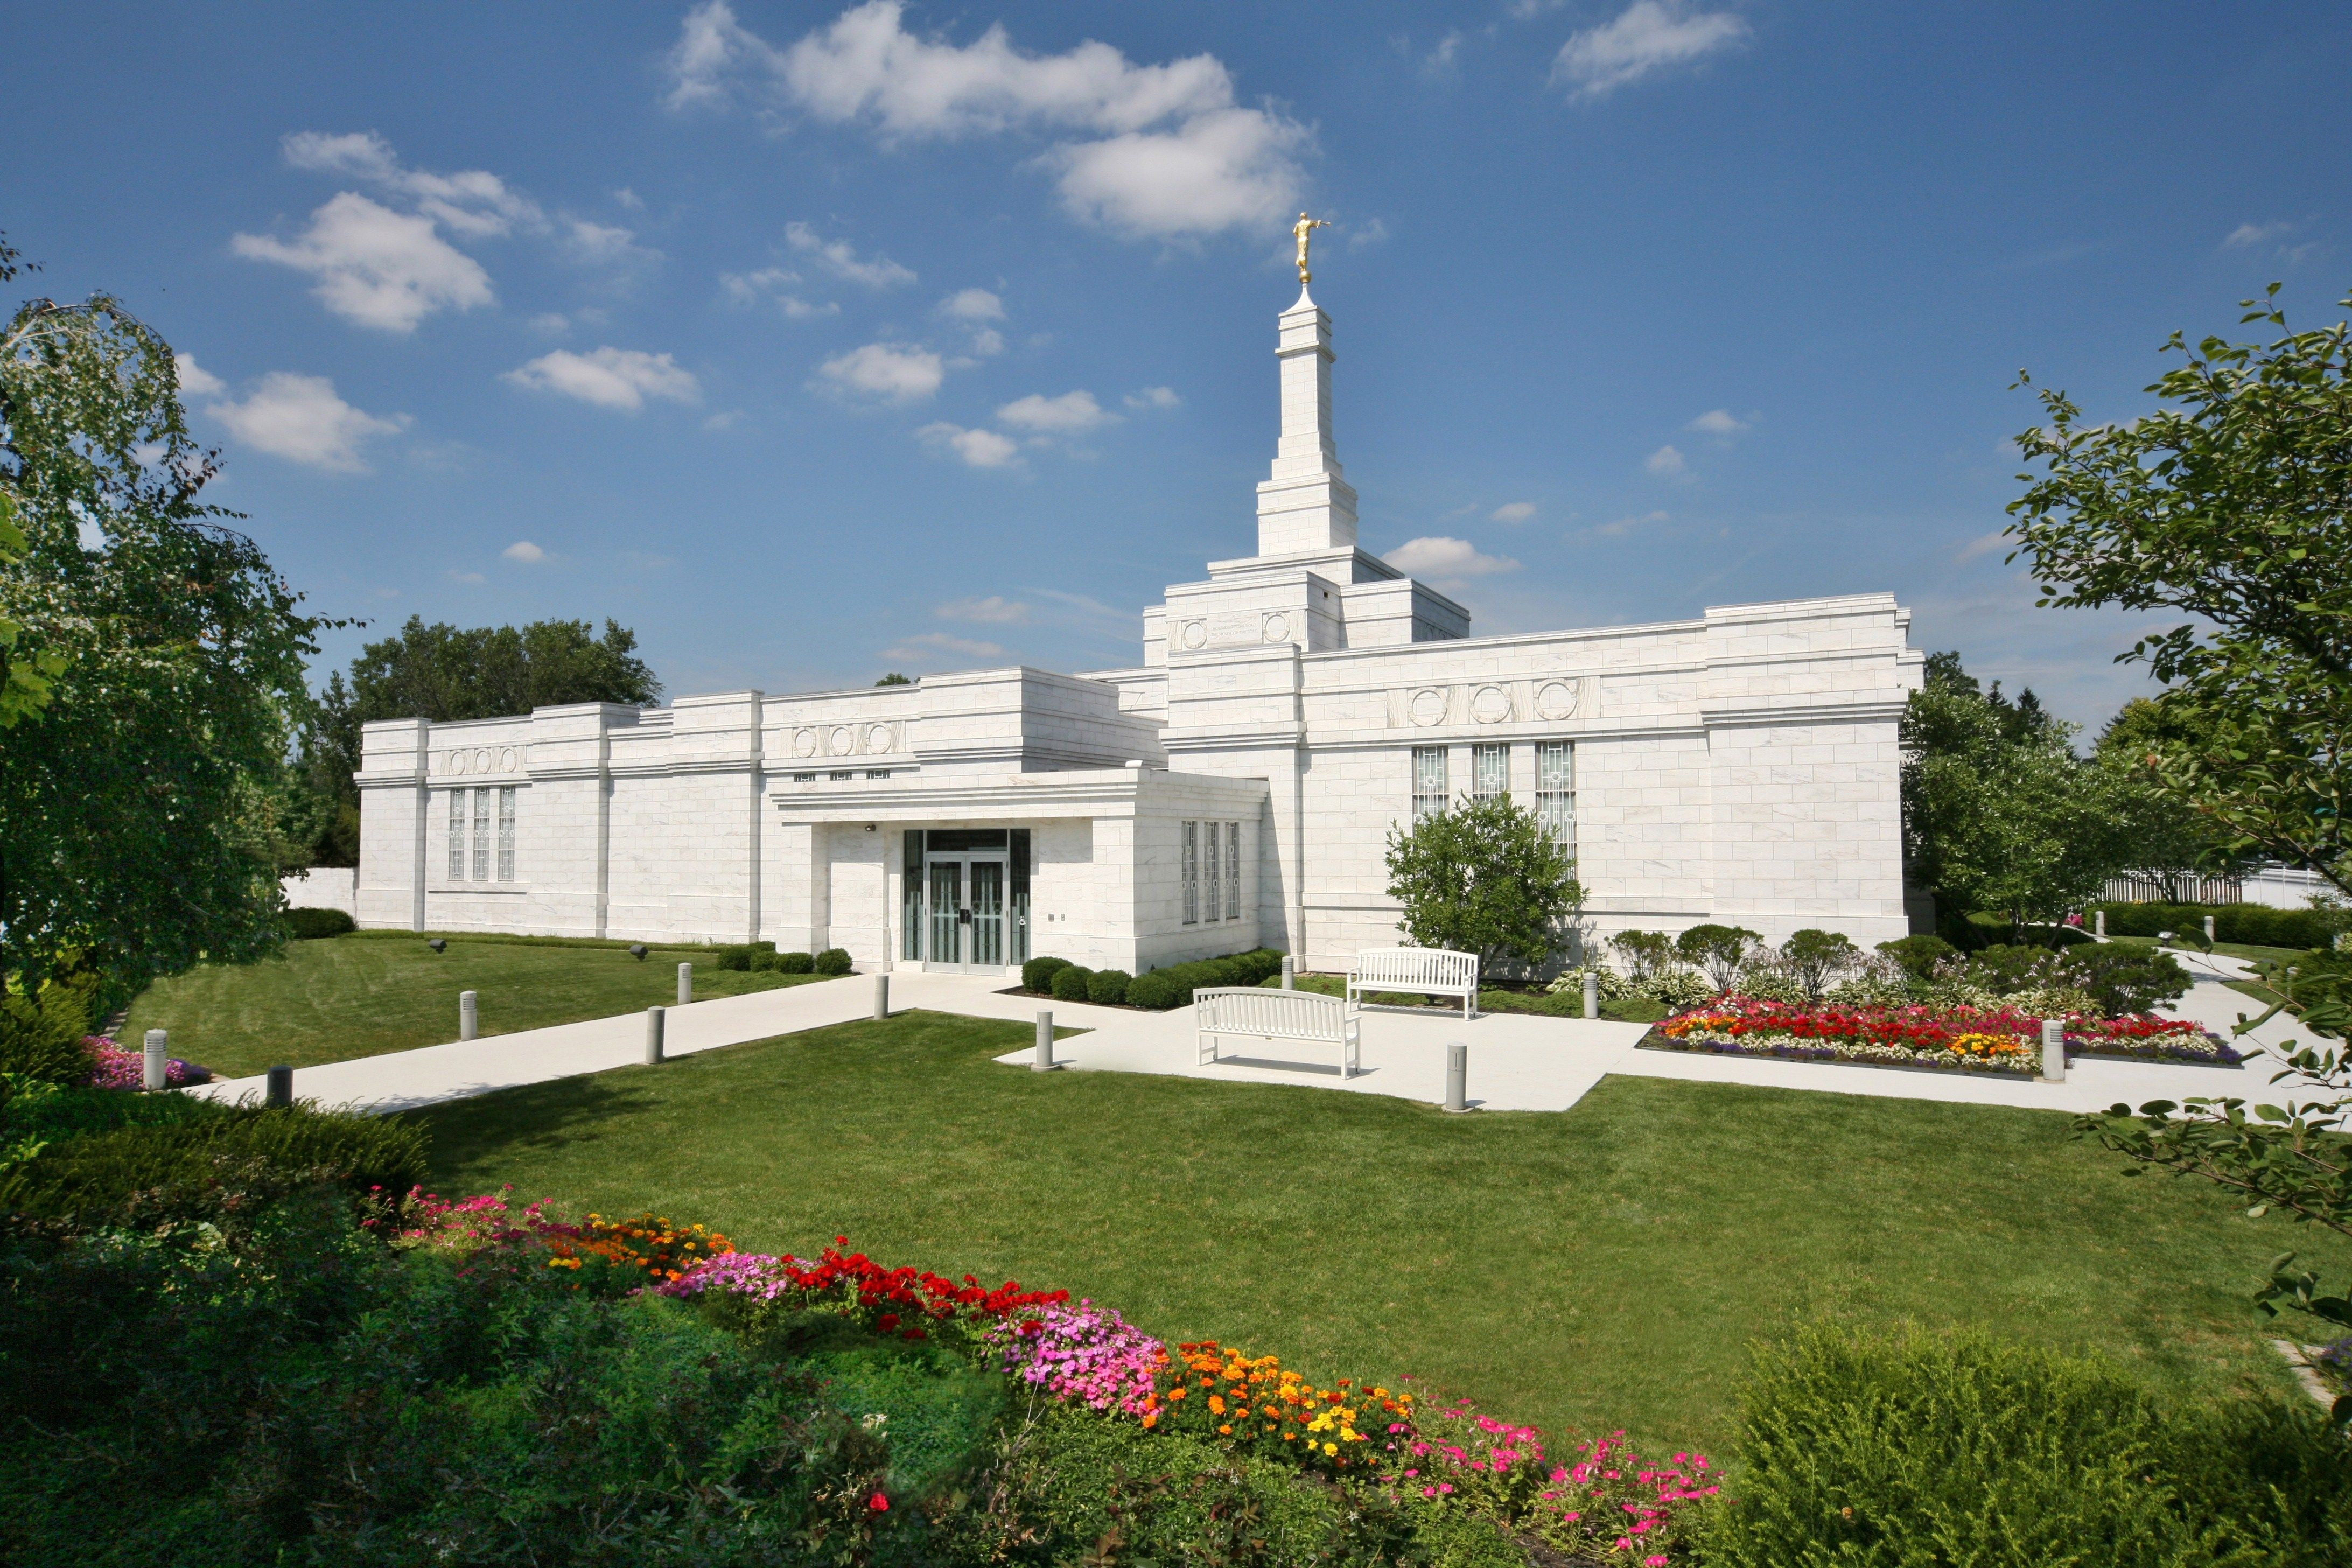 The Columbus Ohio Temple during the daytime.